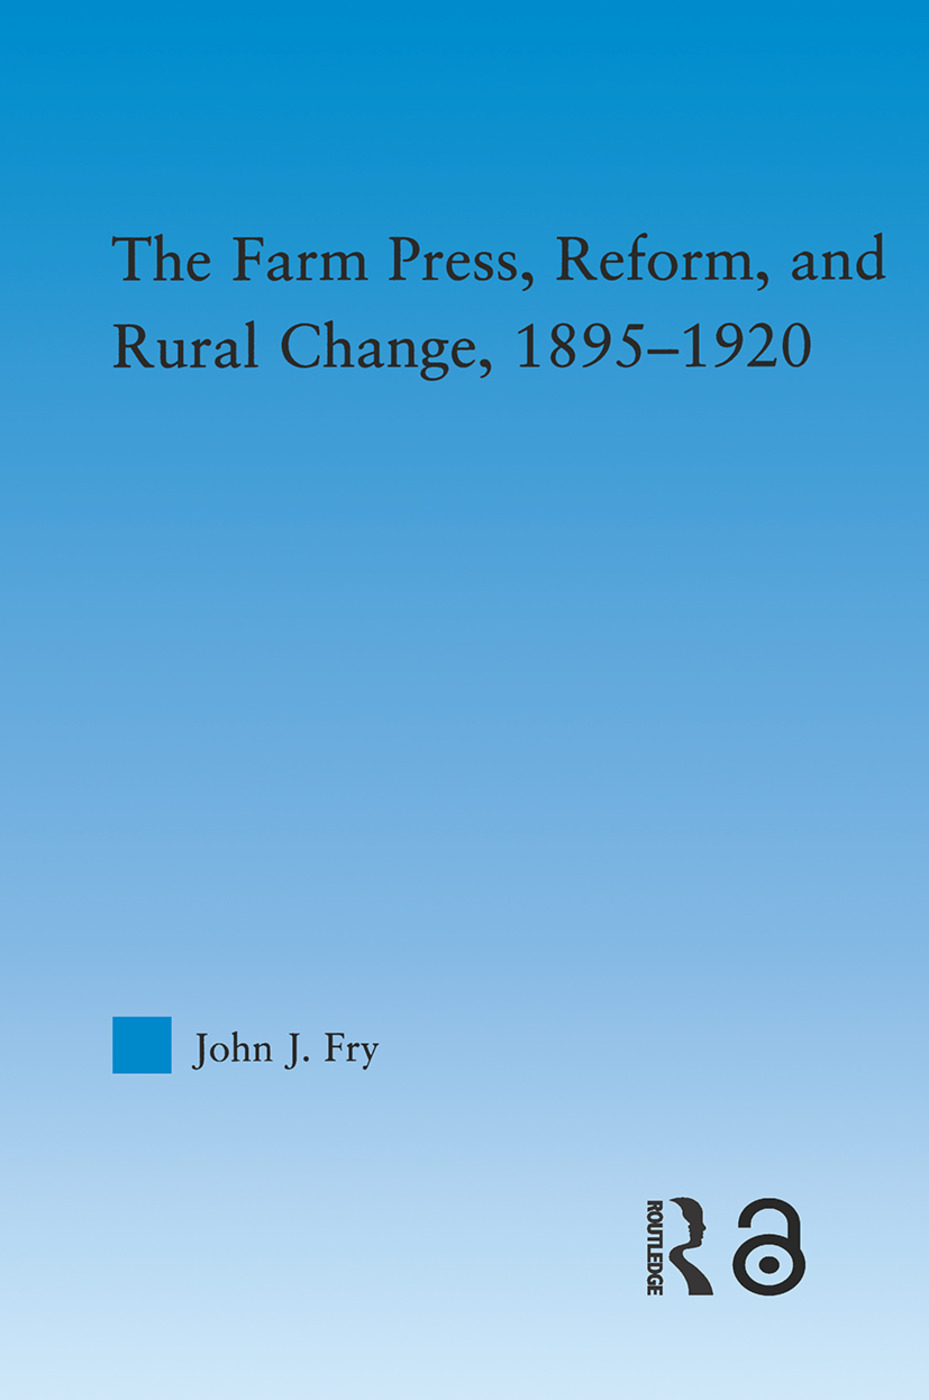 The Farm Press, Reform and Rural Change, 1895-1920 book cover